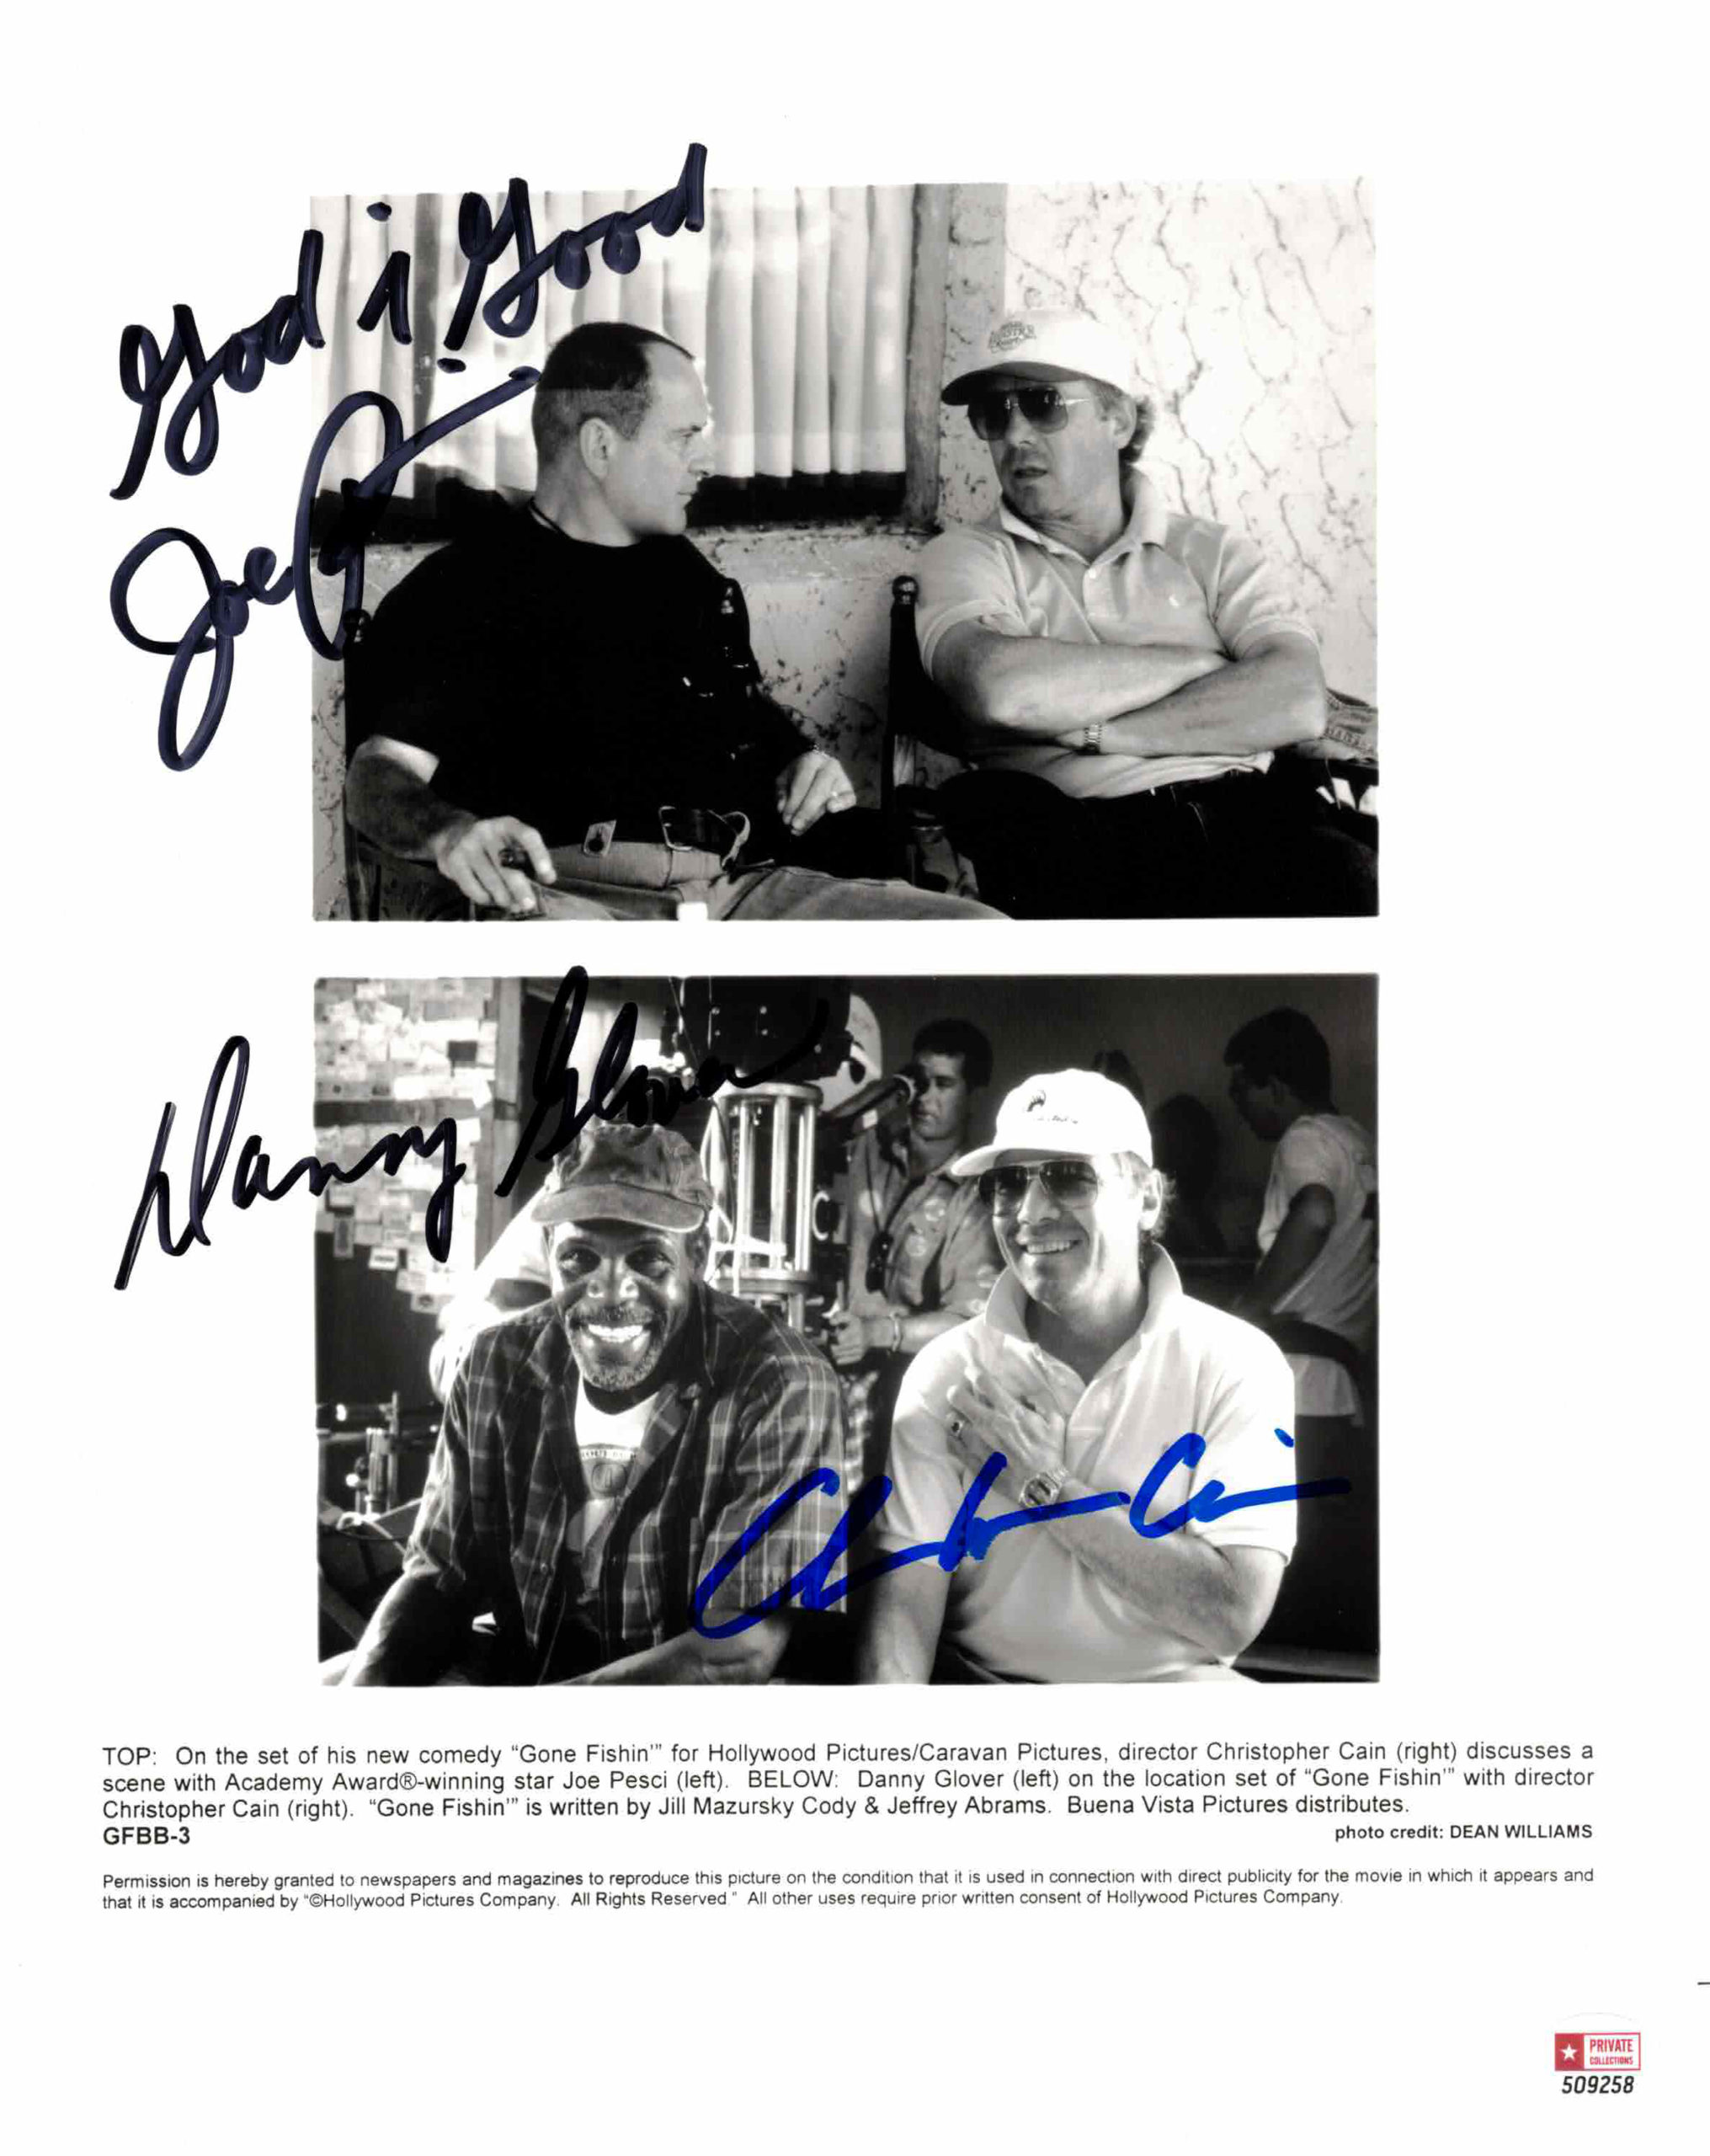 Danny Glover, Joe Pesci & Christopher Cain - autogram